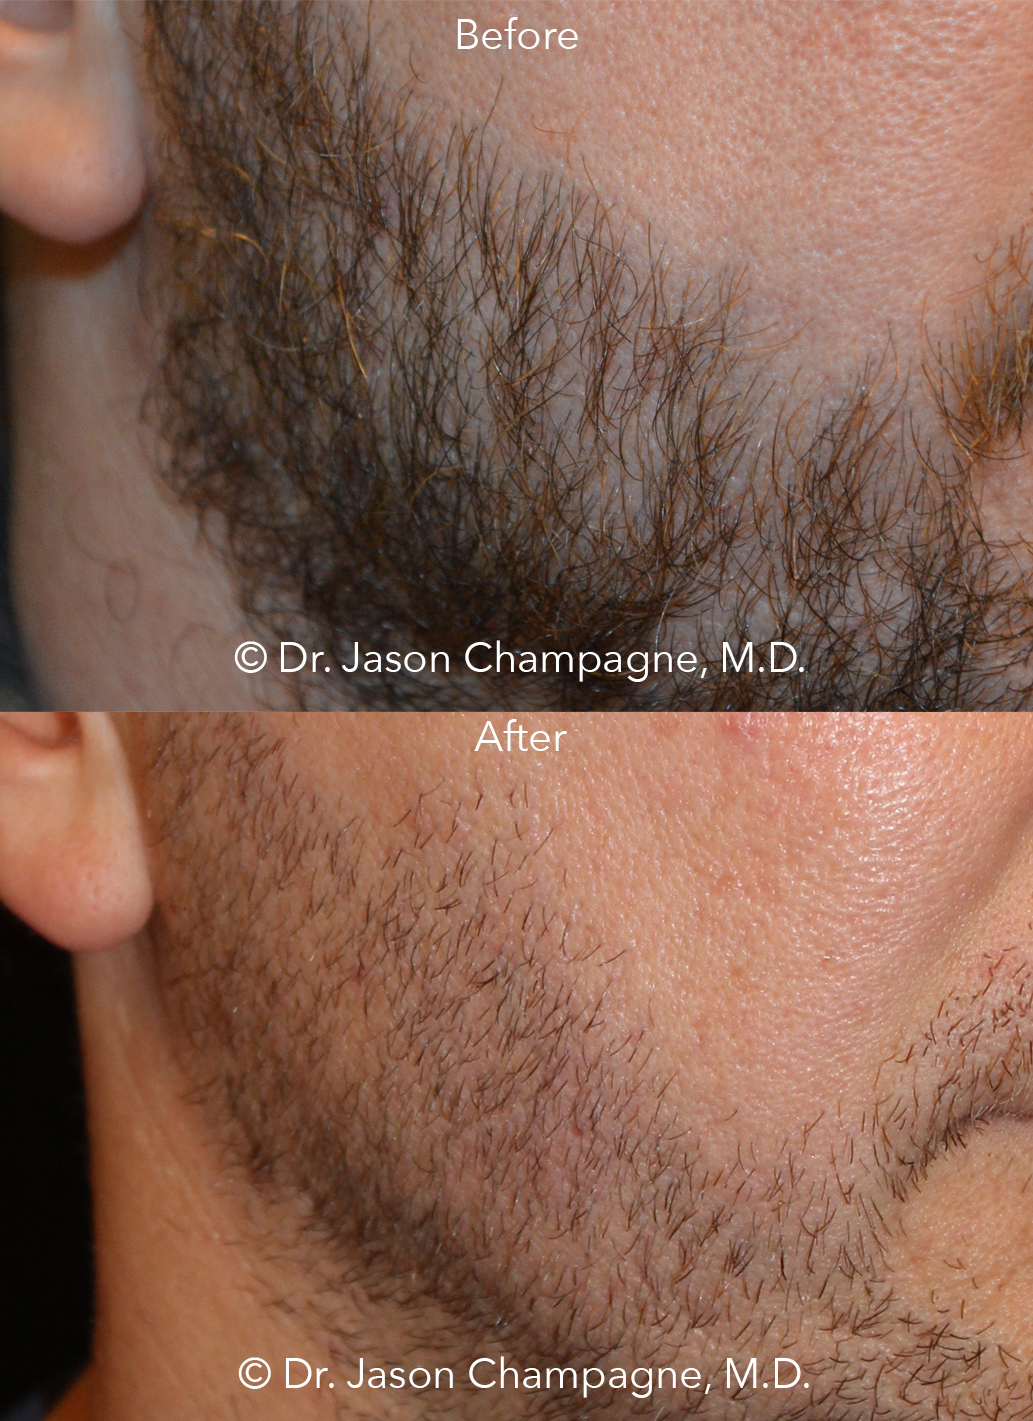 Note: After picture shows the density of hair follicle placement in the center of the patient's cheek and the new, natural looking beard hairline design.